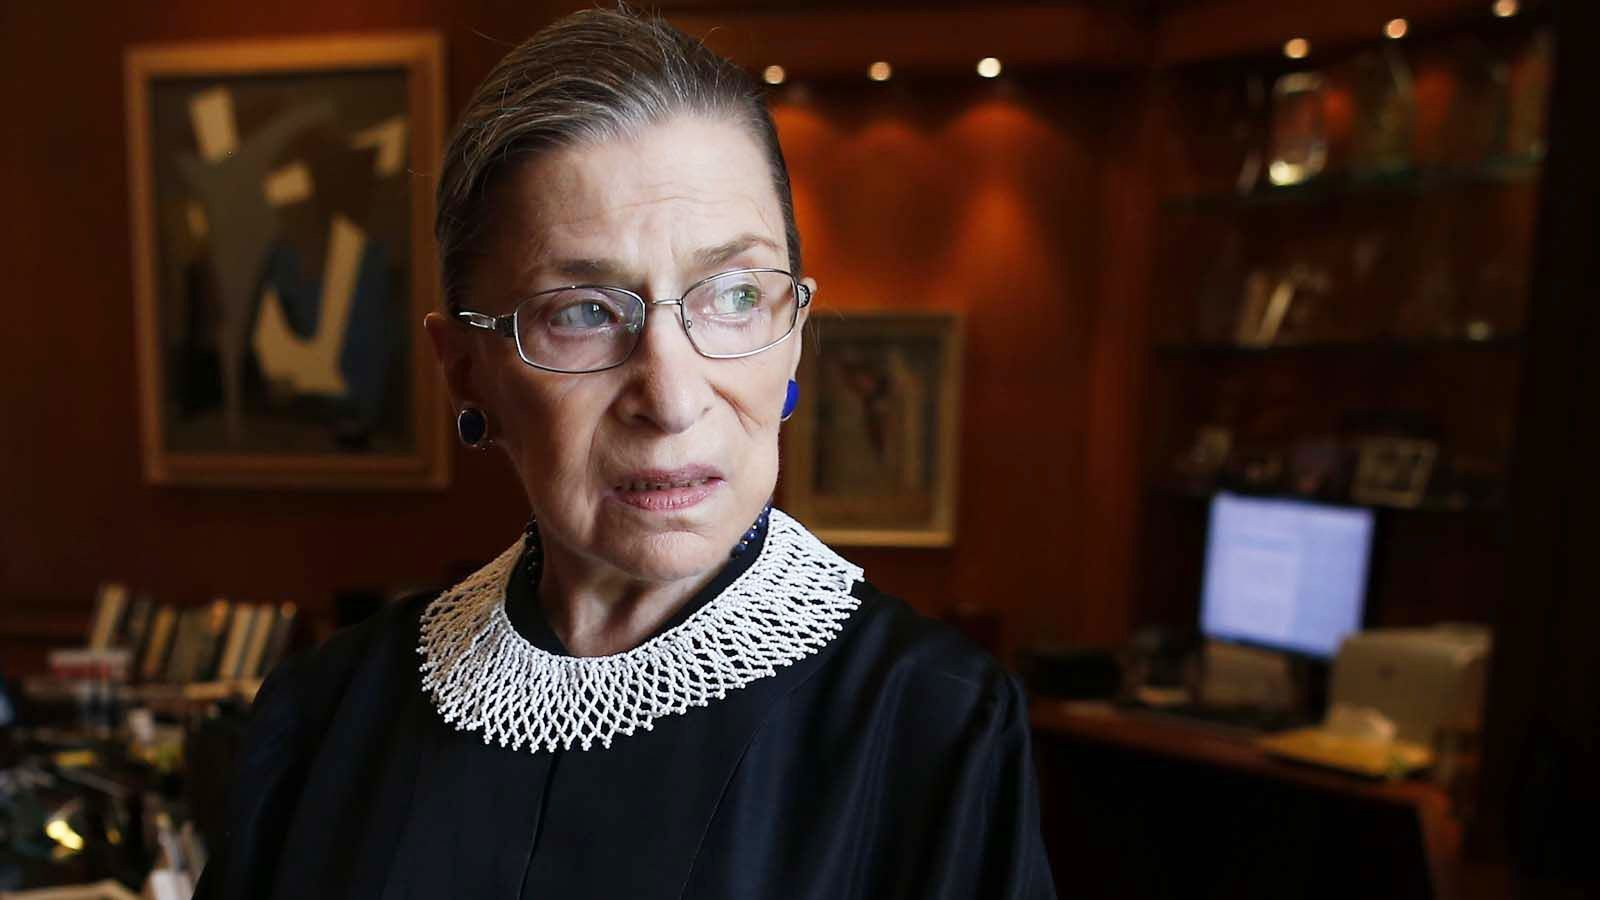 Ruth Bader Ginsburg Movies And Tv Shows To Binge Right Now